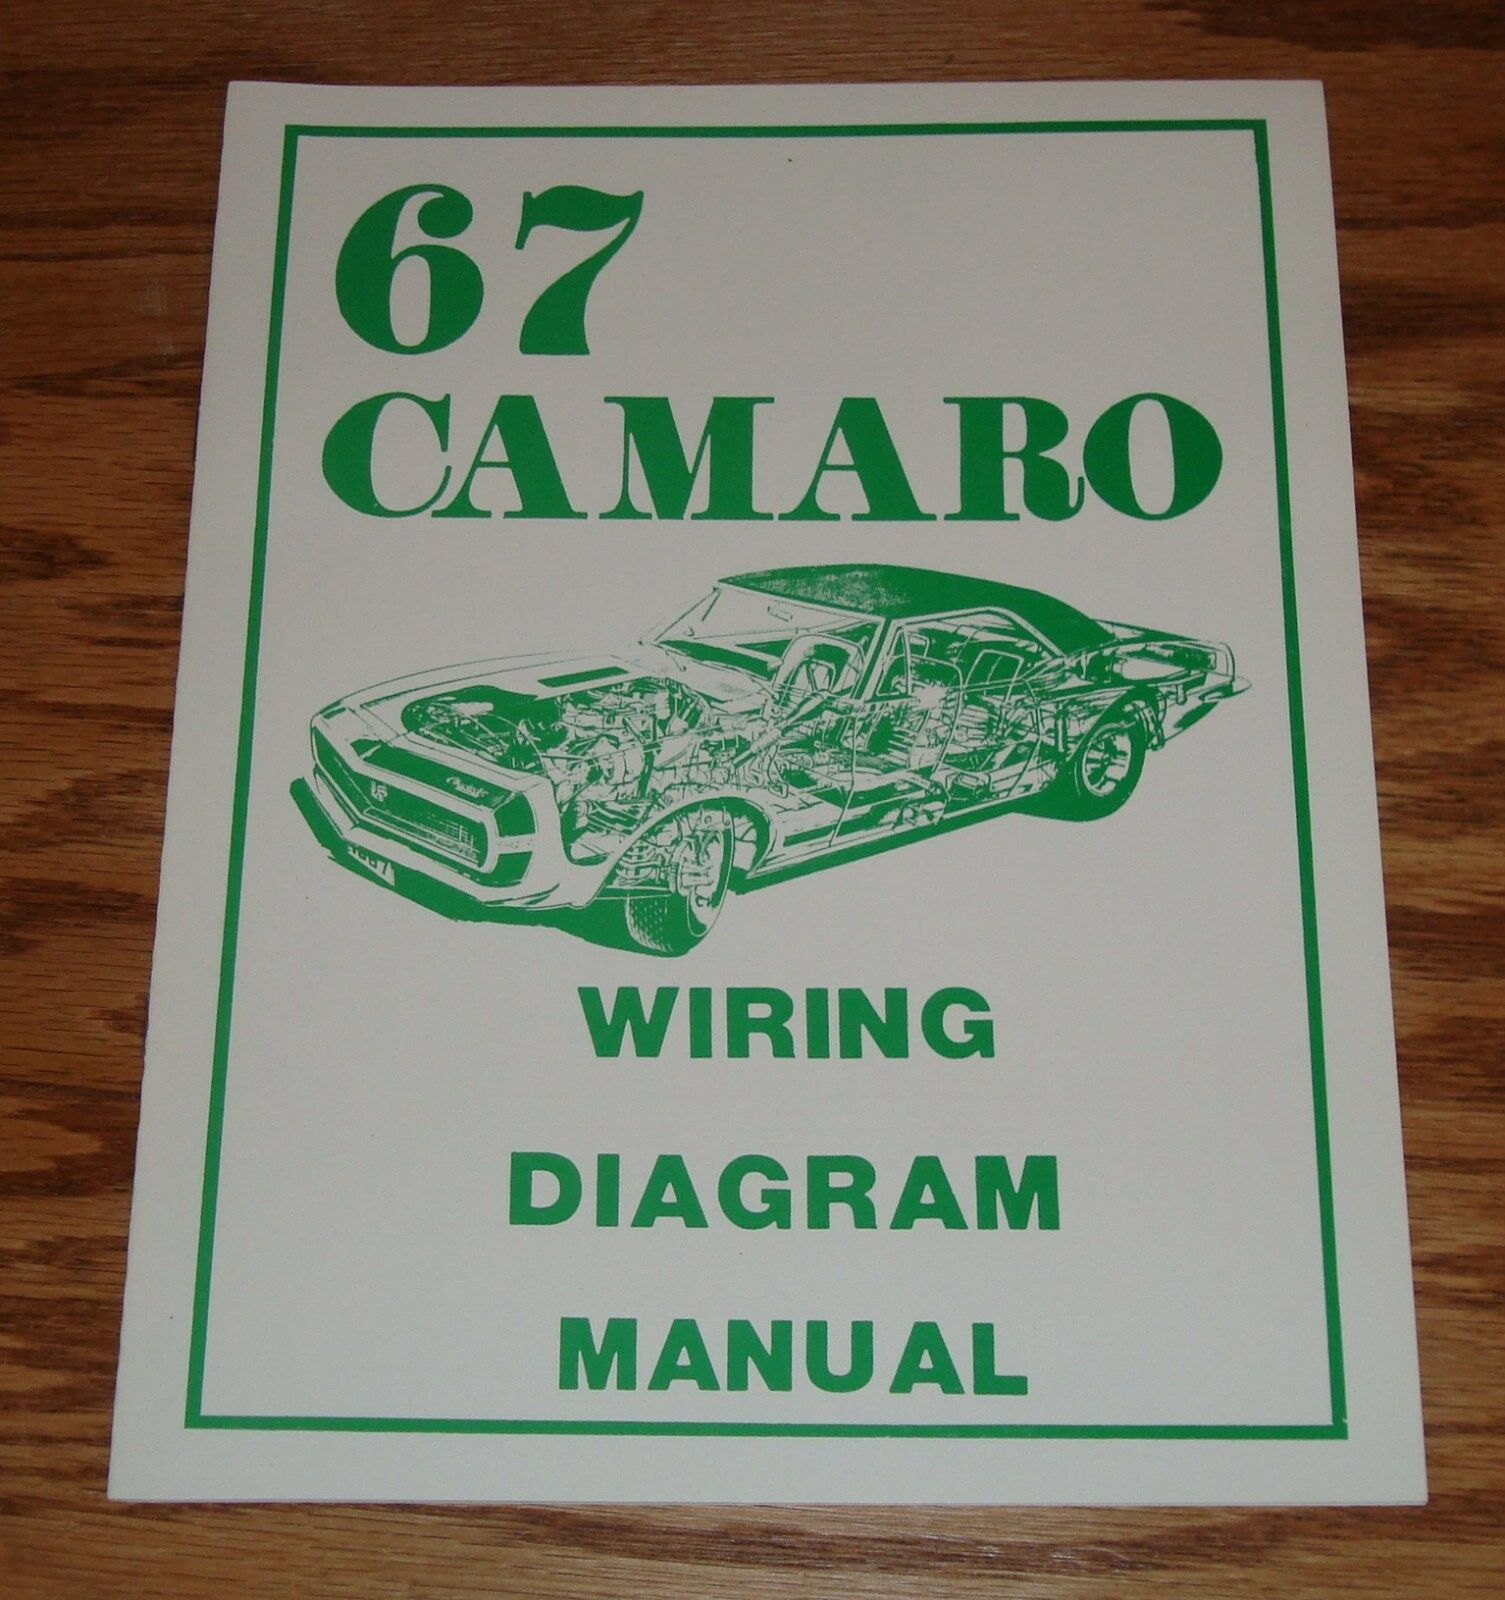 1967 Chevrolet Camaro Wiring Diagram Manual 67 Chevy 1 of 1 See More